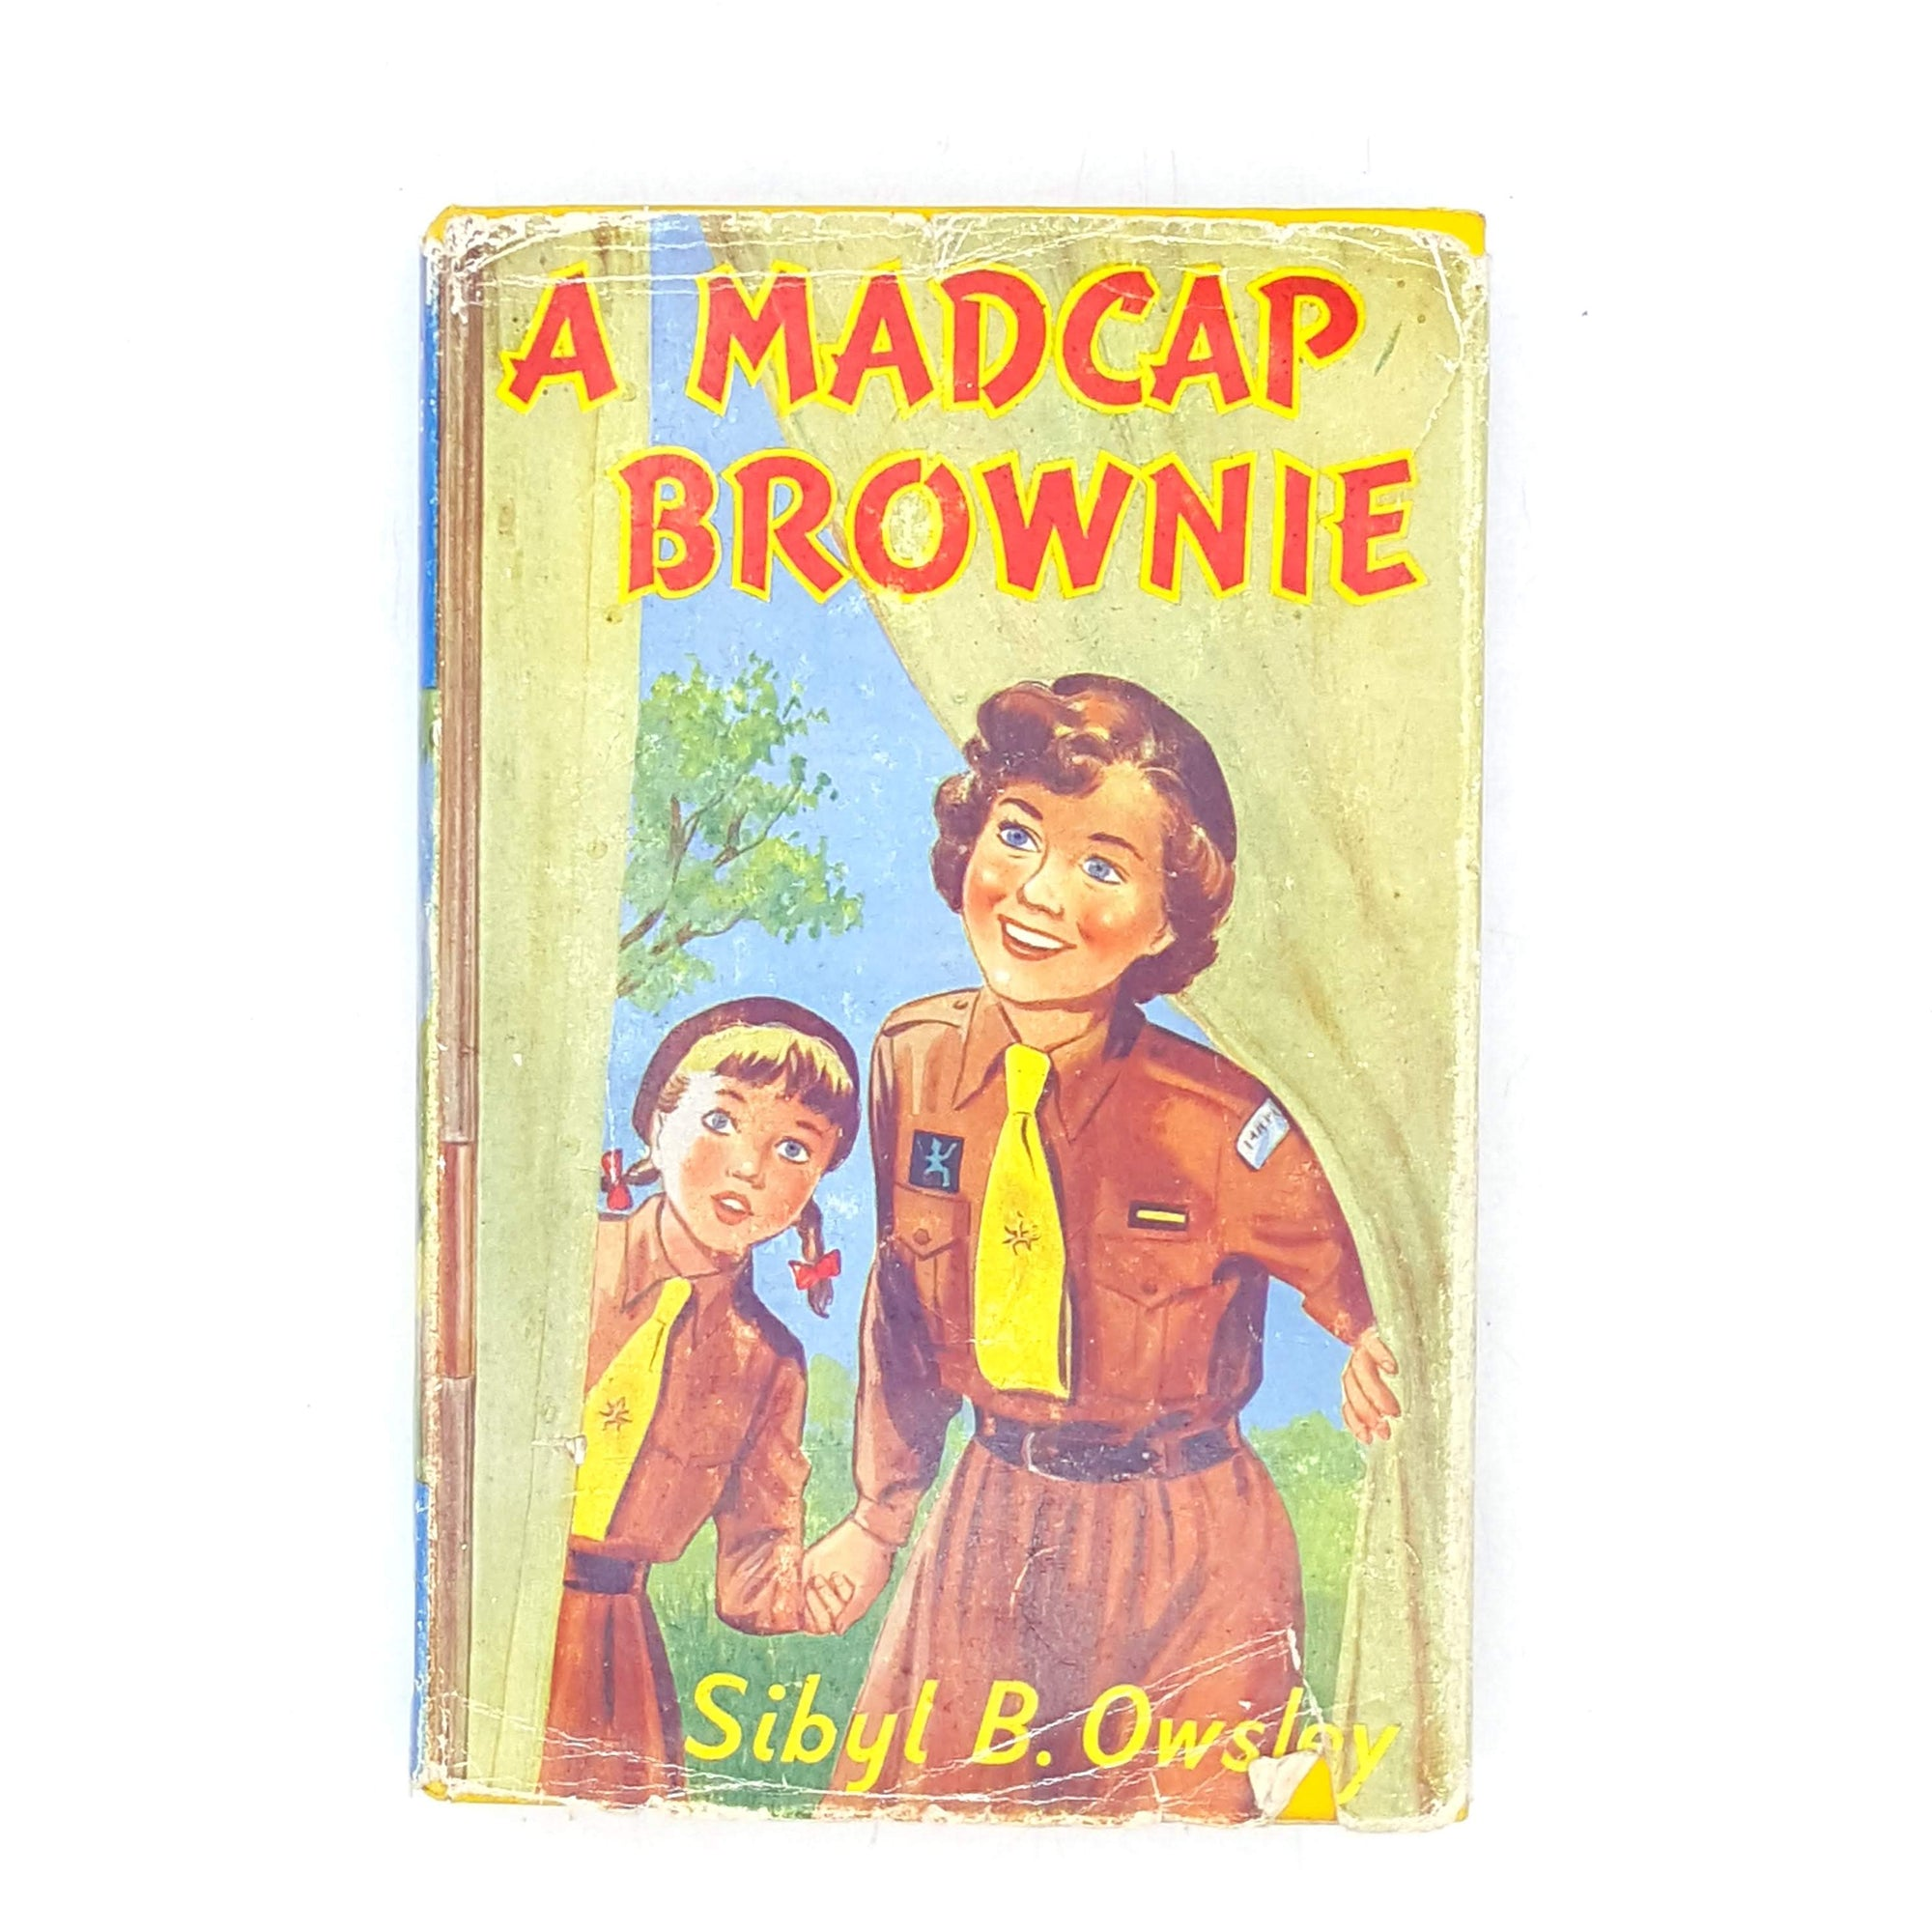 A Madcap Brownie by Sybyl B. Owsley 1956